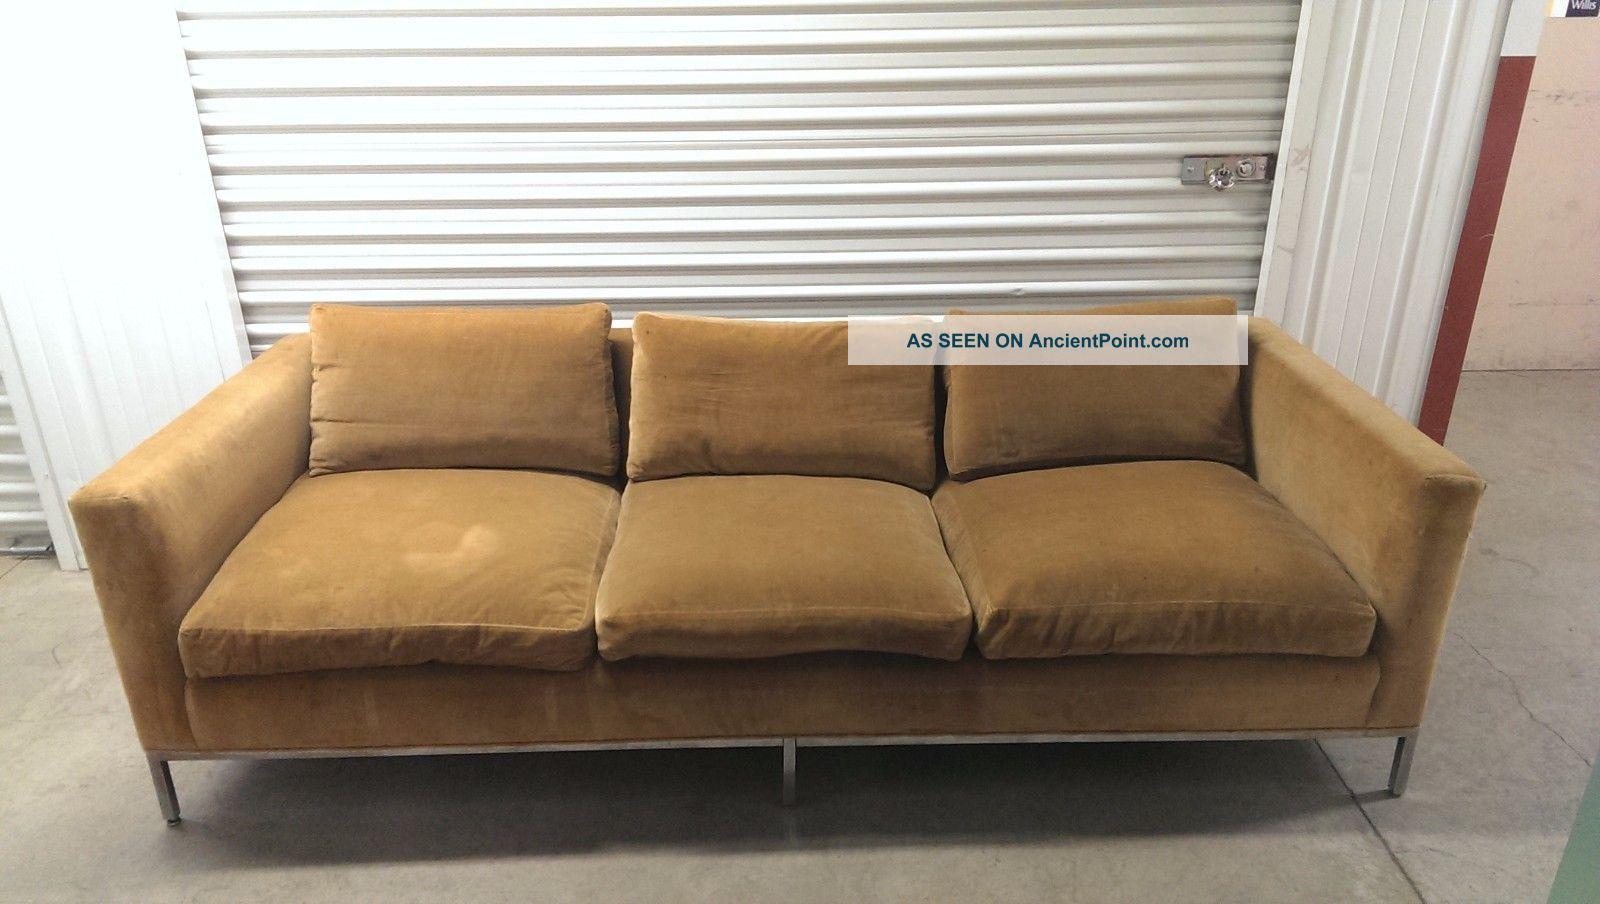 Vintage Mid Century Couch / Sofa And Love Seat - Reupholstering Needed Post-1950 photo